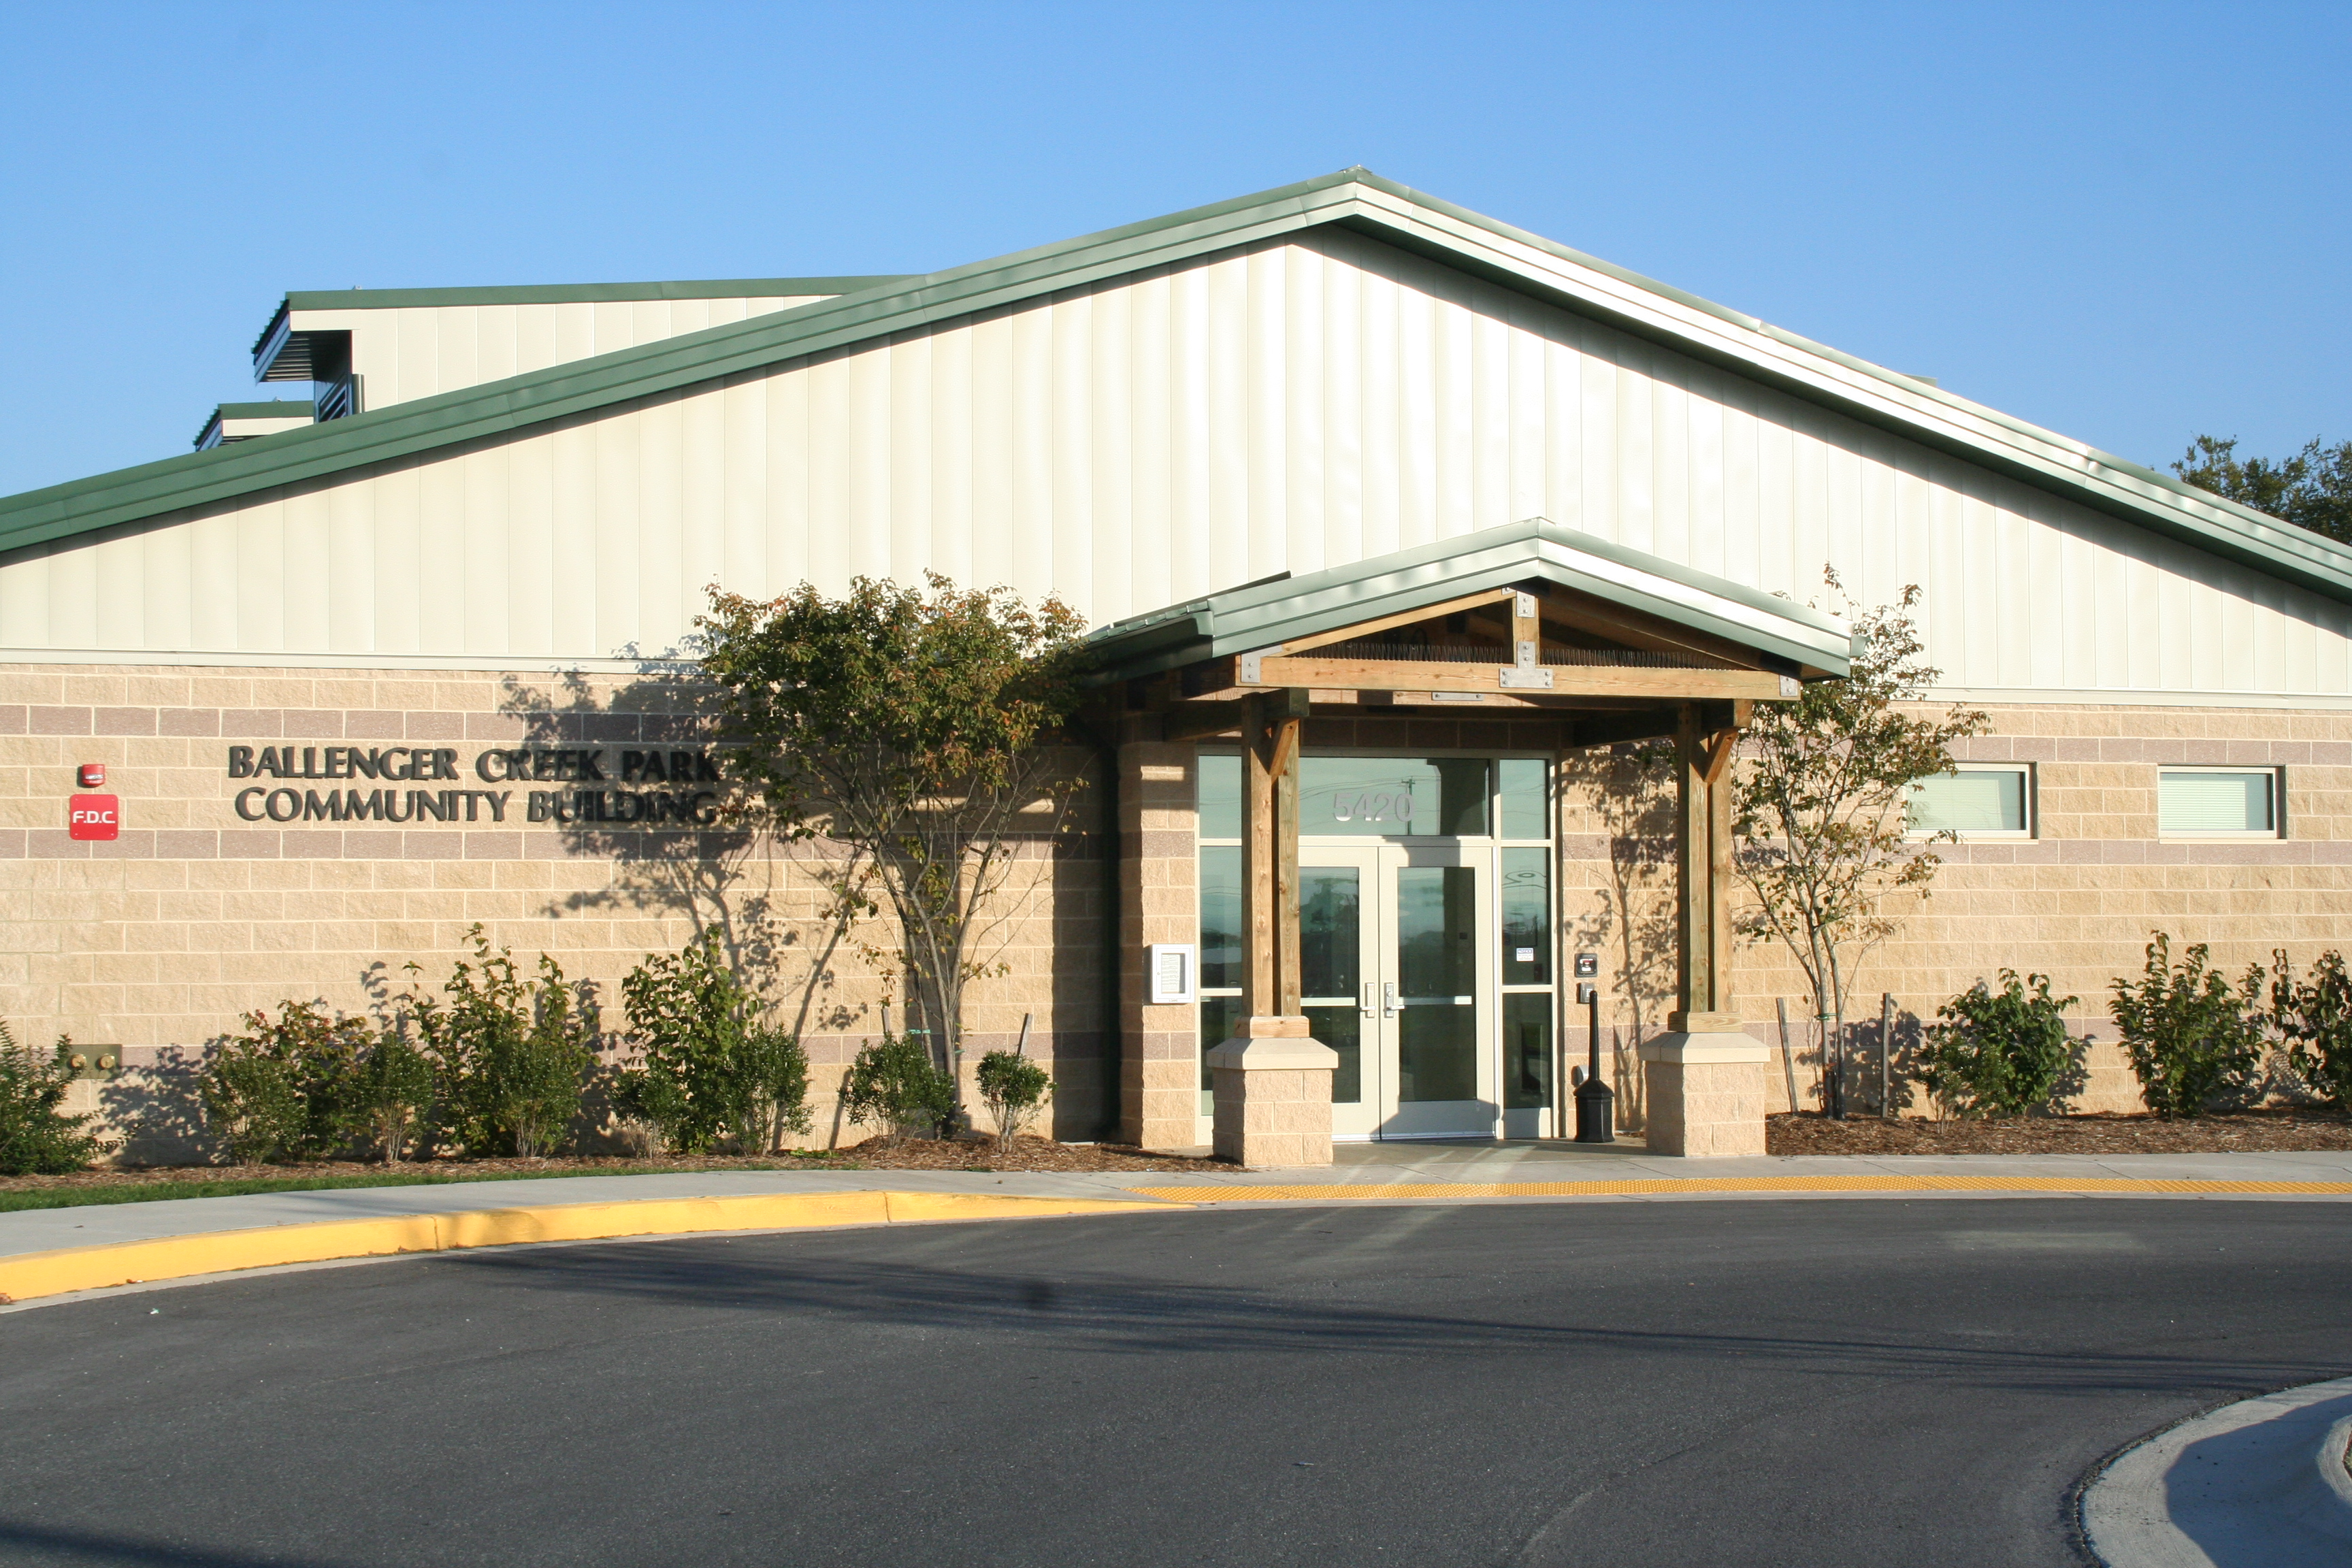 Ballanger Creek Community Center